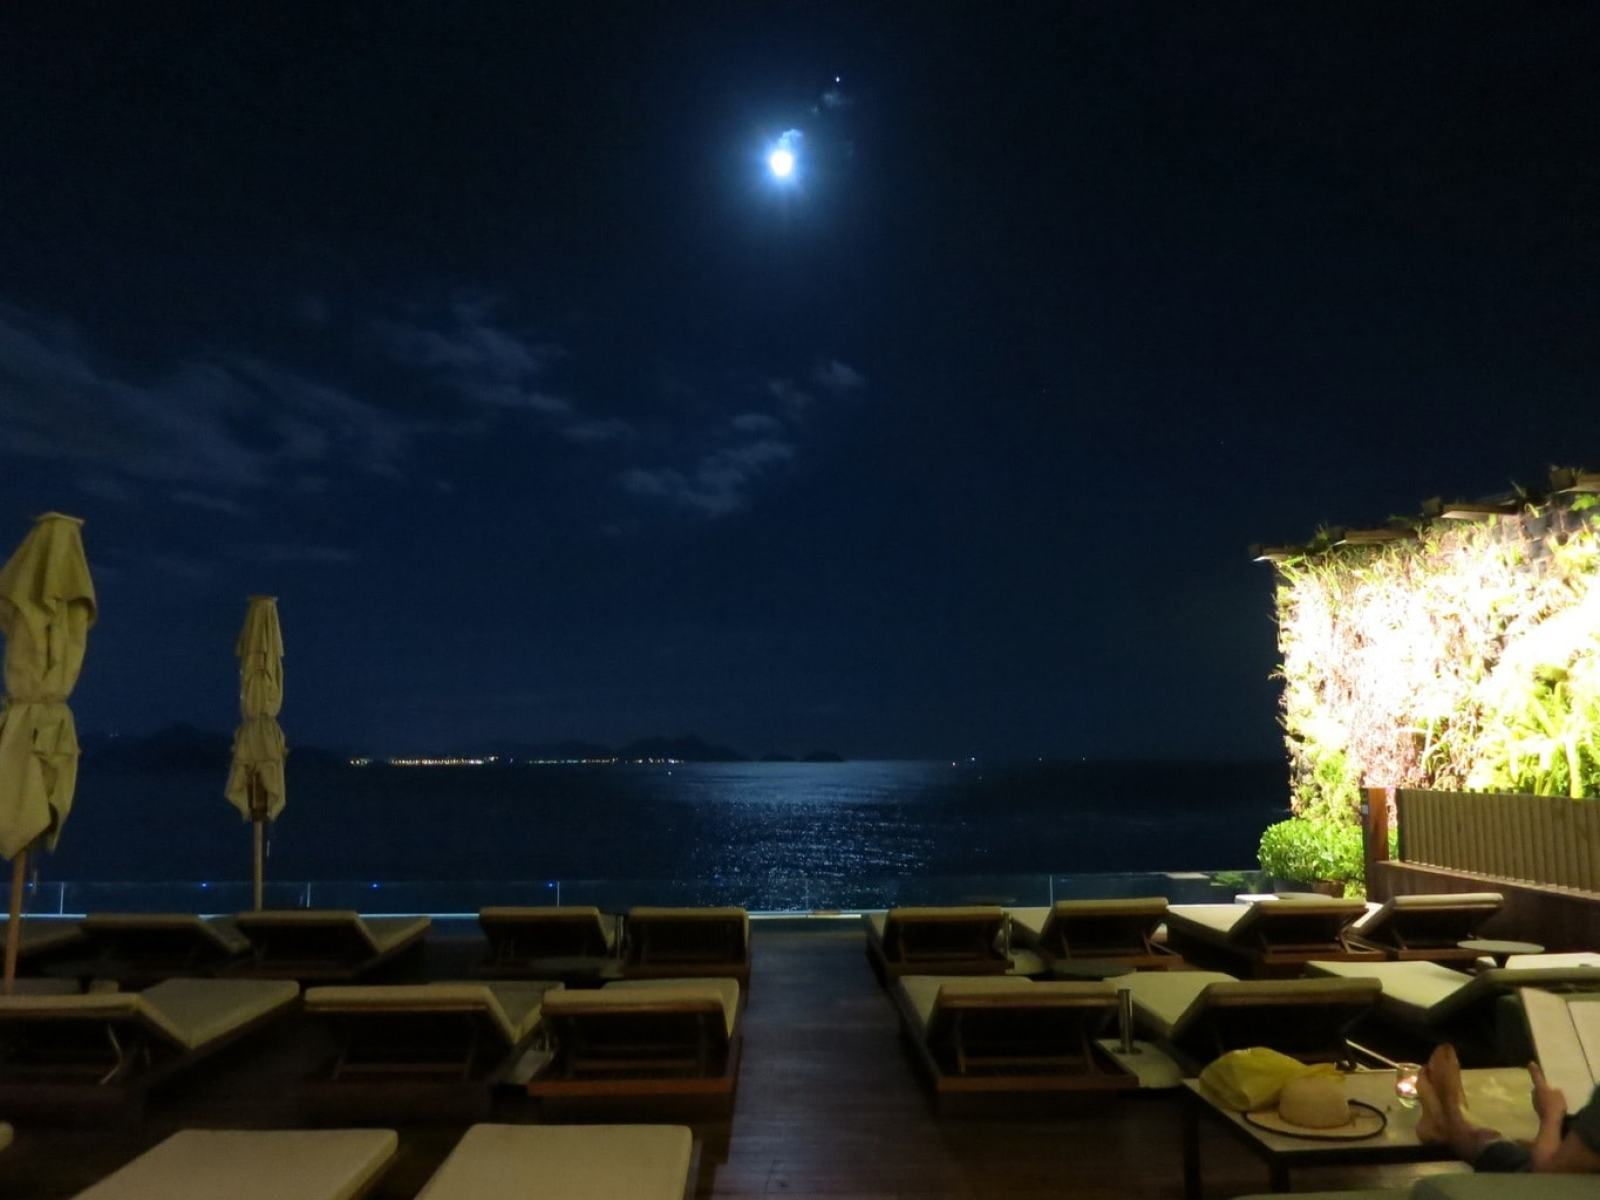 Moonlit Night Hotel Emaliano Rio Brazil